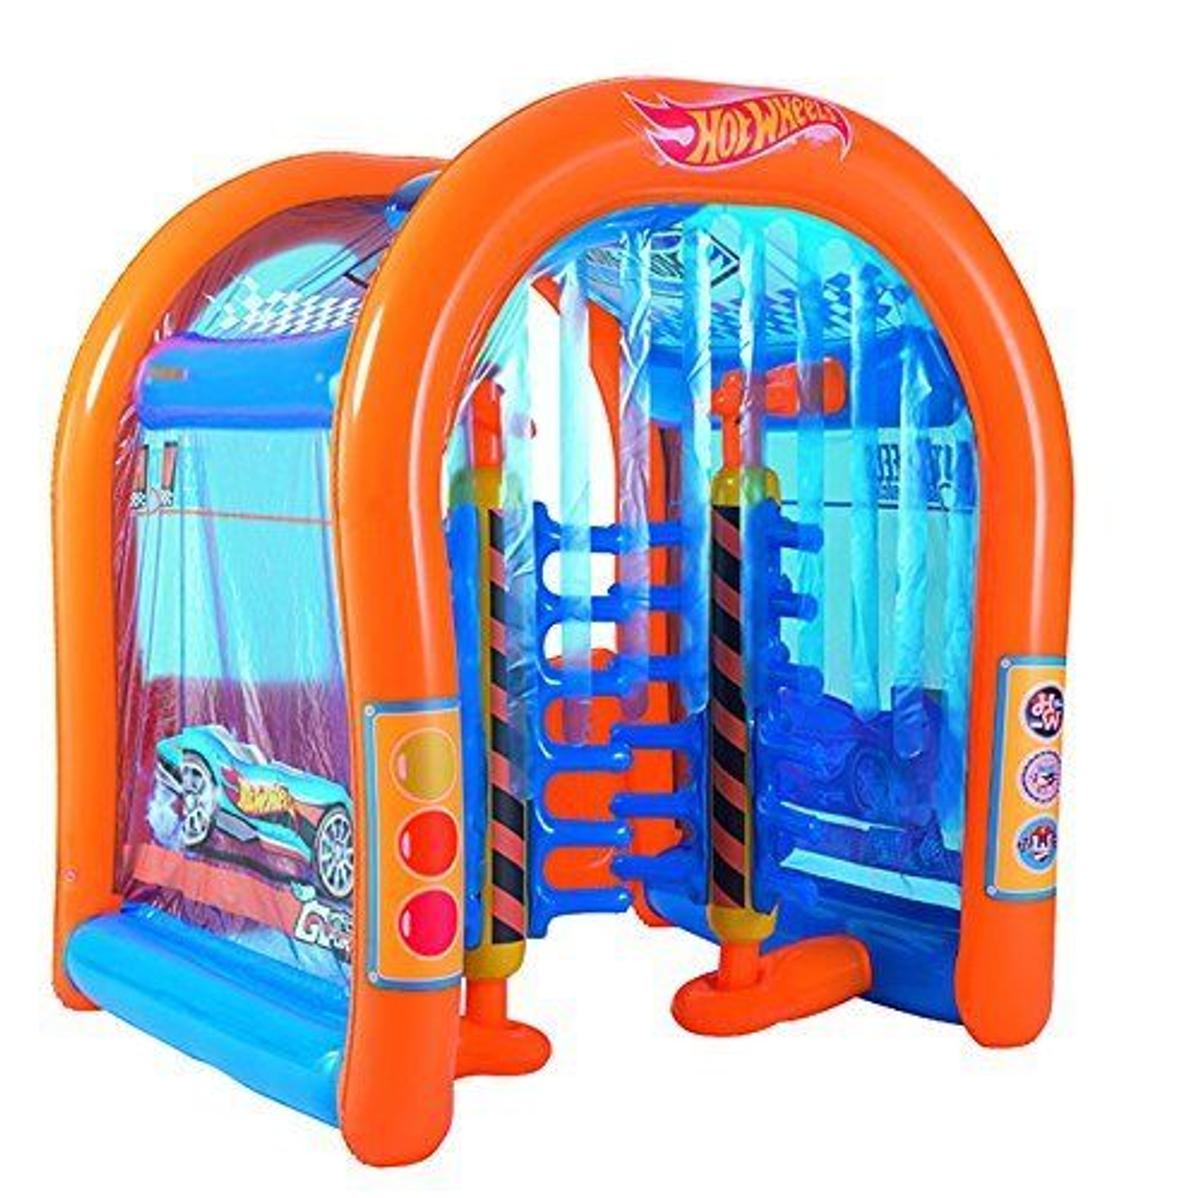 Hot Wheels Inflatable Car Wash In Ls12 Leeds For 35 00 For Sale Shpock